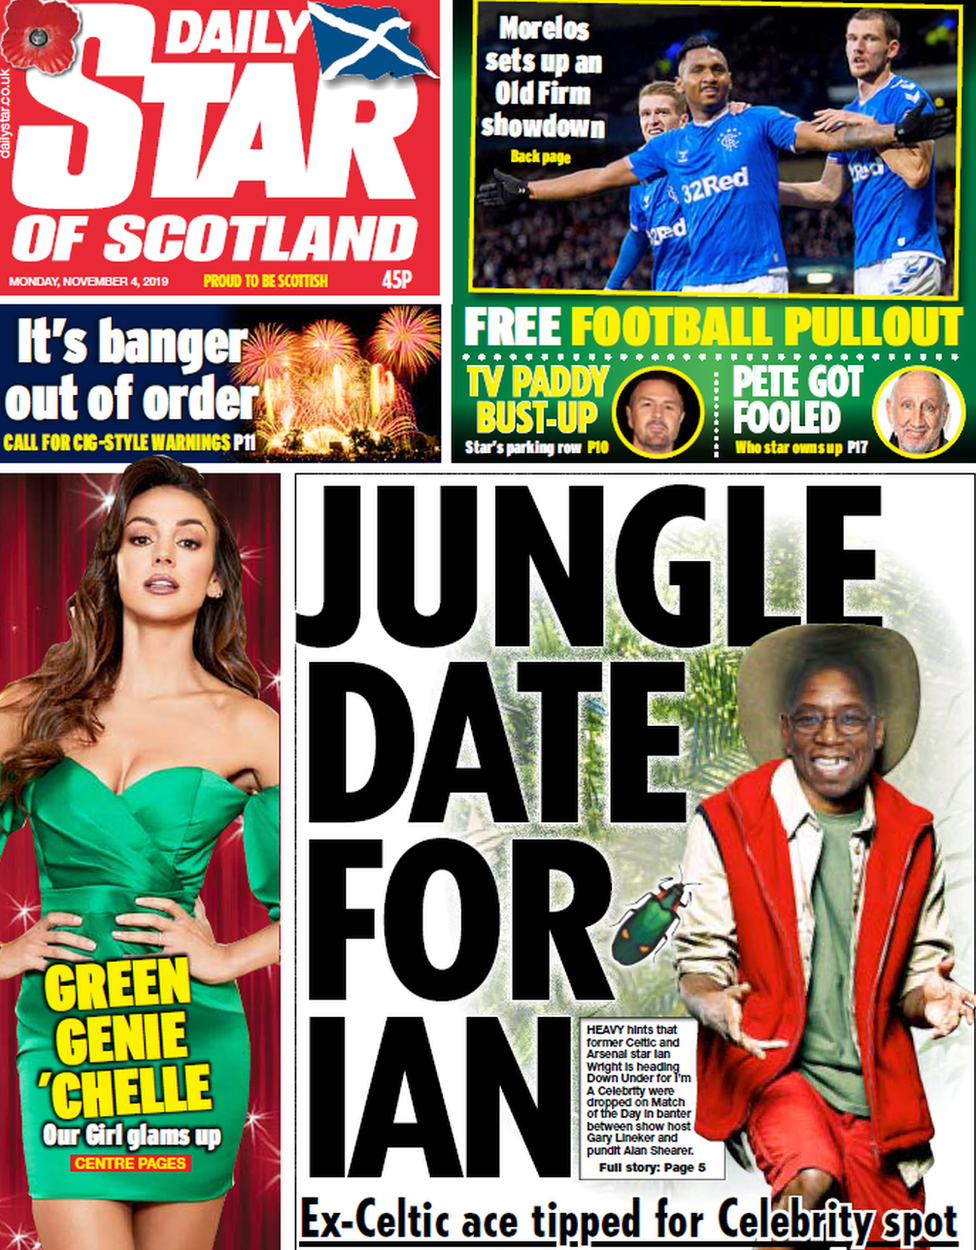 The Star of Scotland front page